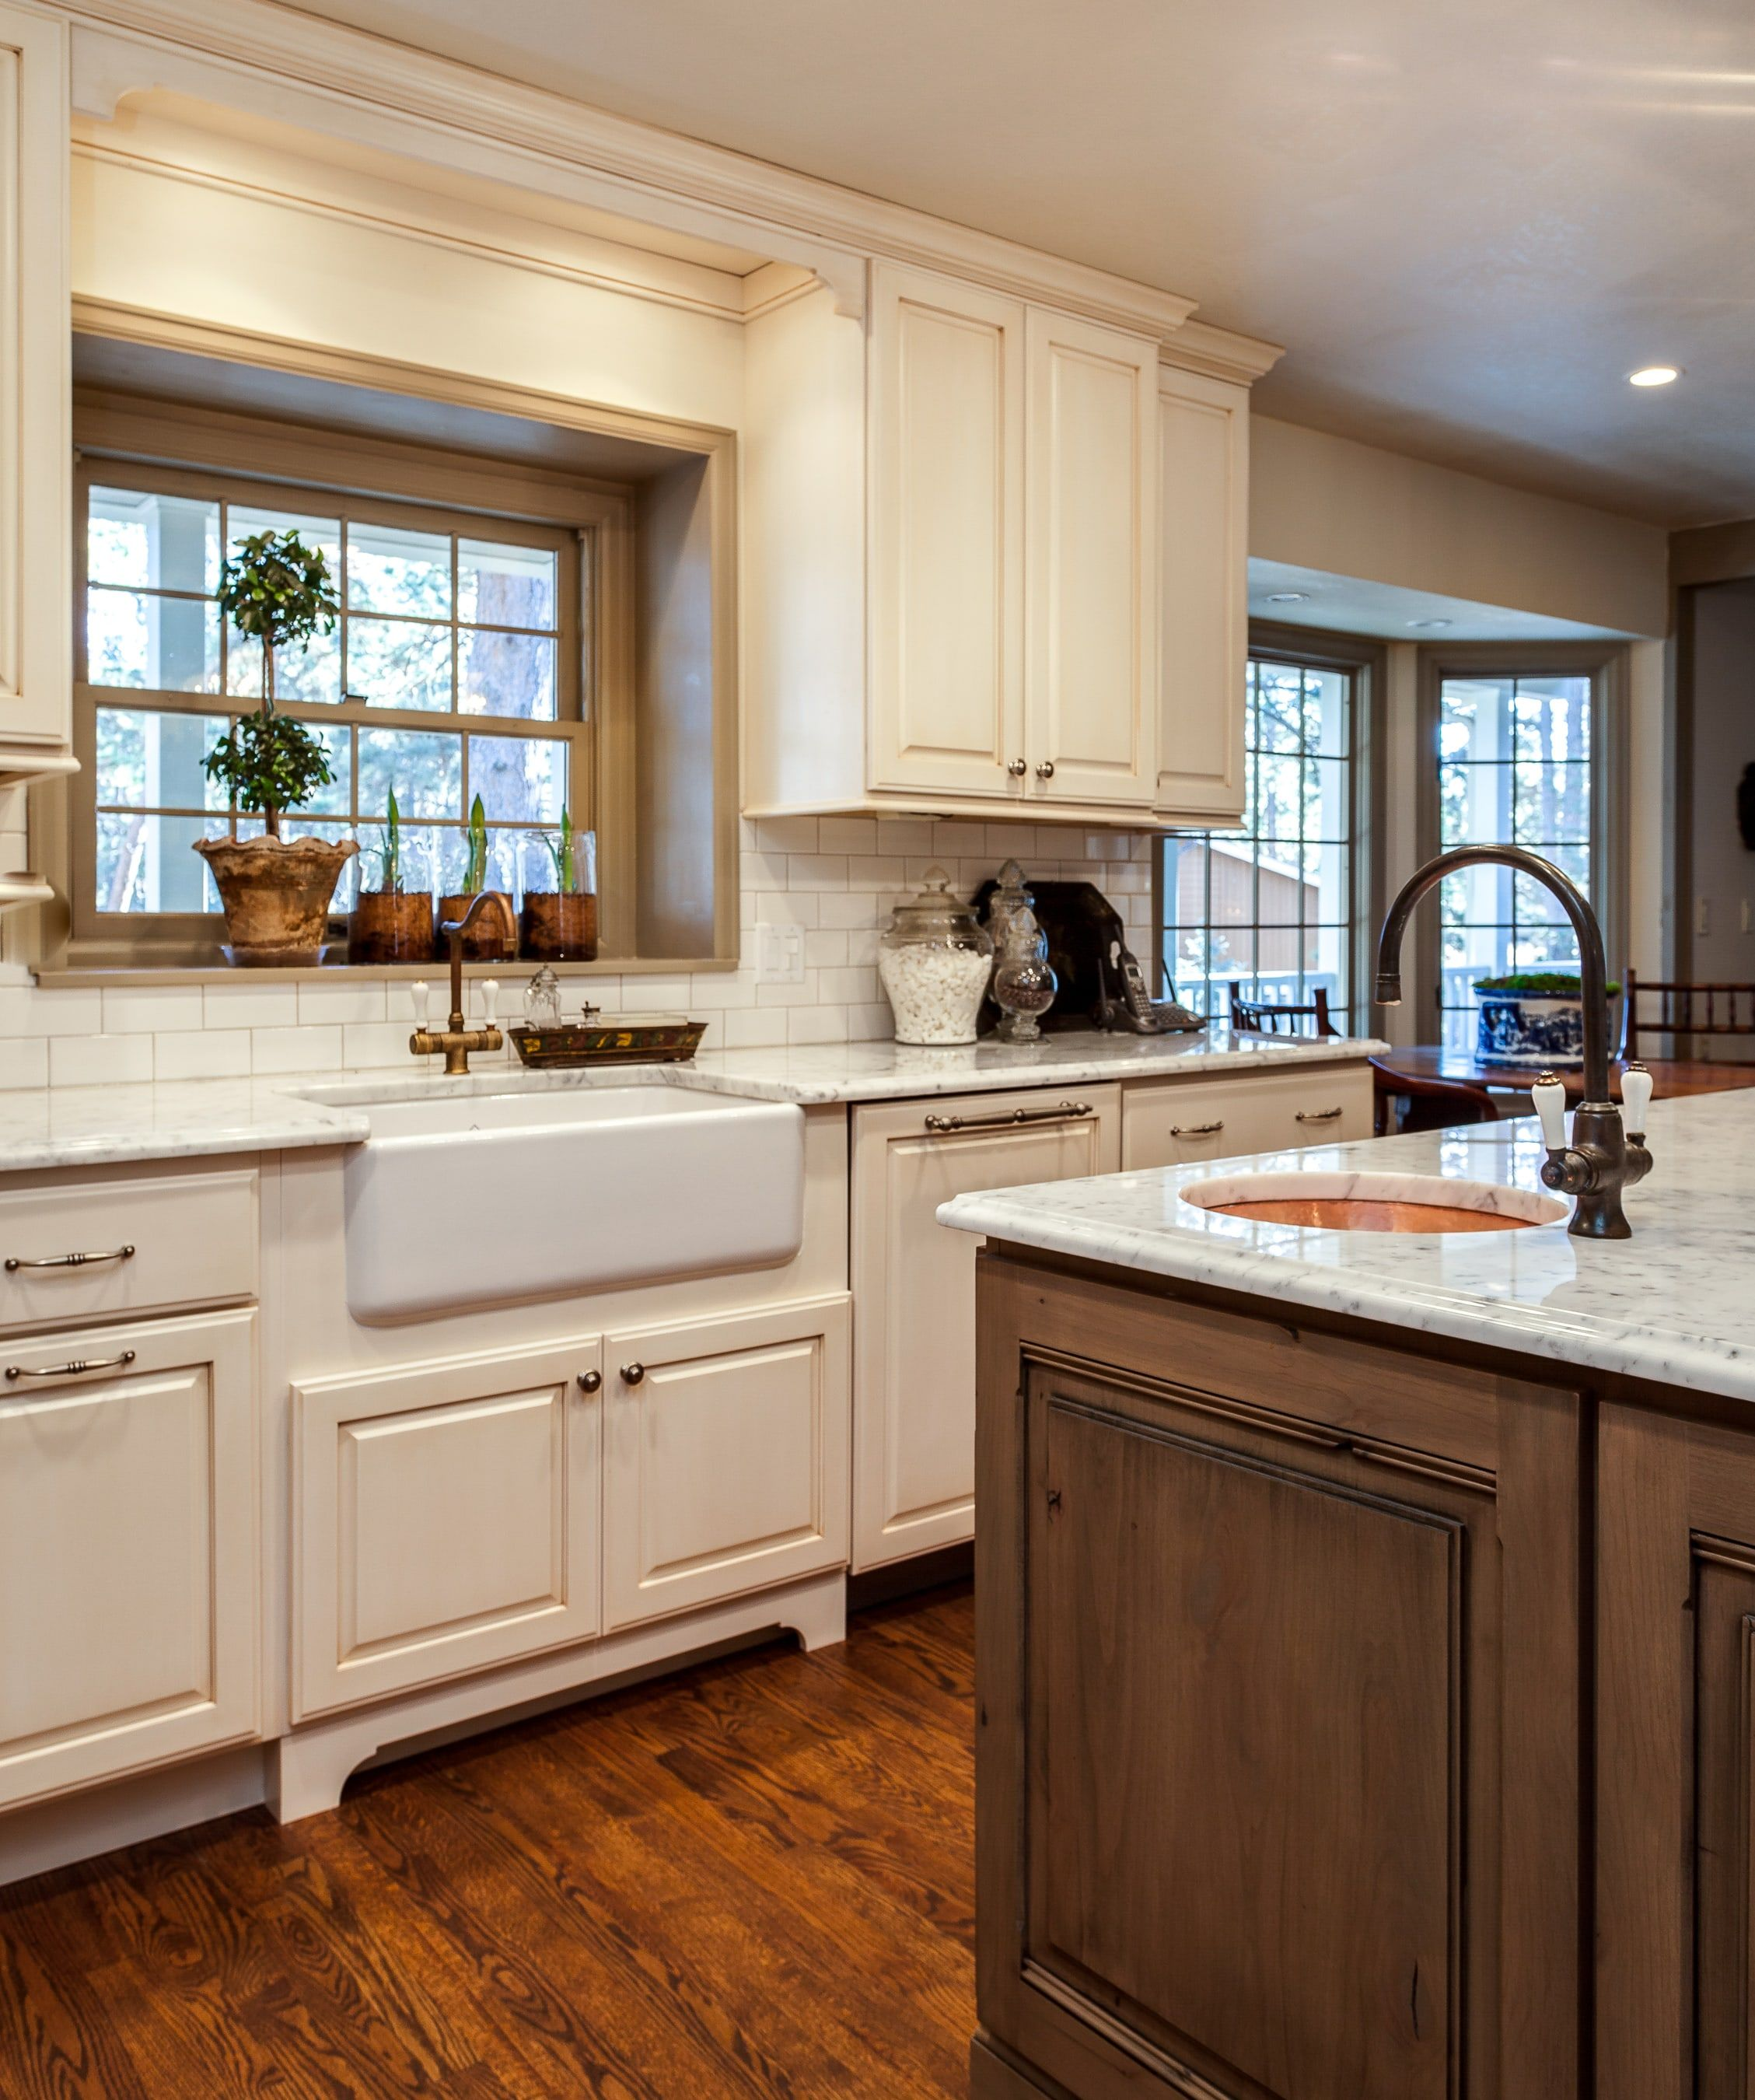 Cabinet Maintenance How To Clean And Care For Your Cabinetry Cherry Cabinets Kitchen Kitchen Cabinet Remodel Semi Custom Kitchen Cabinets